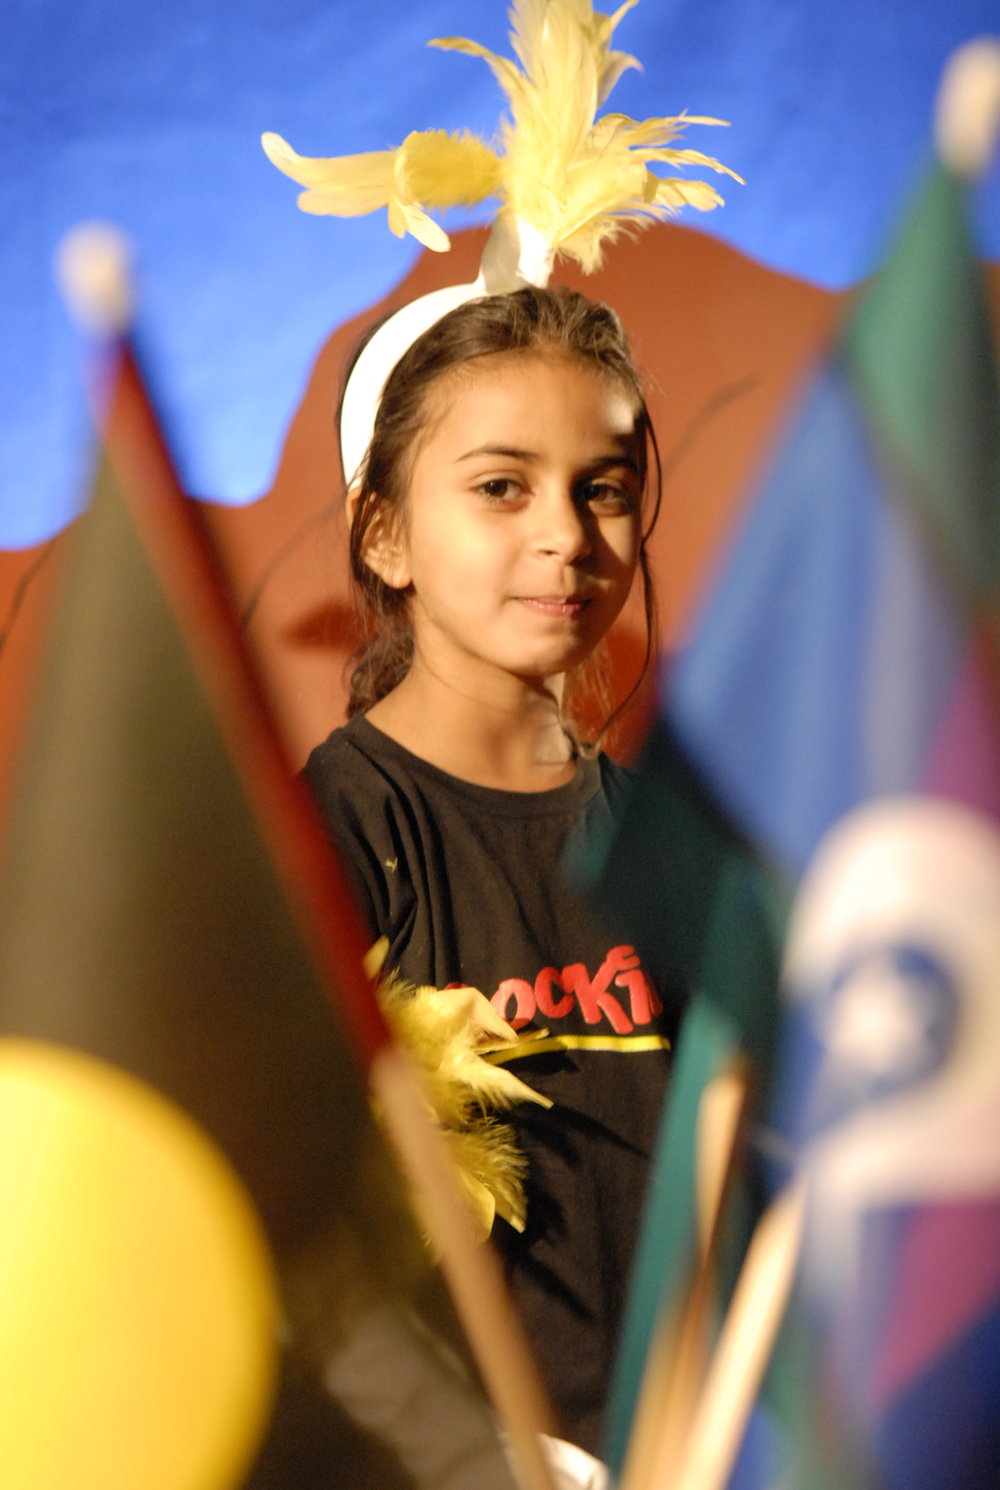 Aboriginal girl standing with Aboriginal flag and the Torres Strait Islander flag. pride in Indigenosu cultures